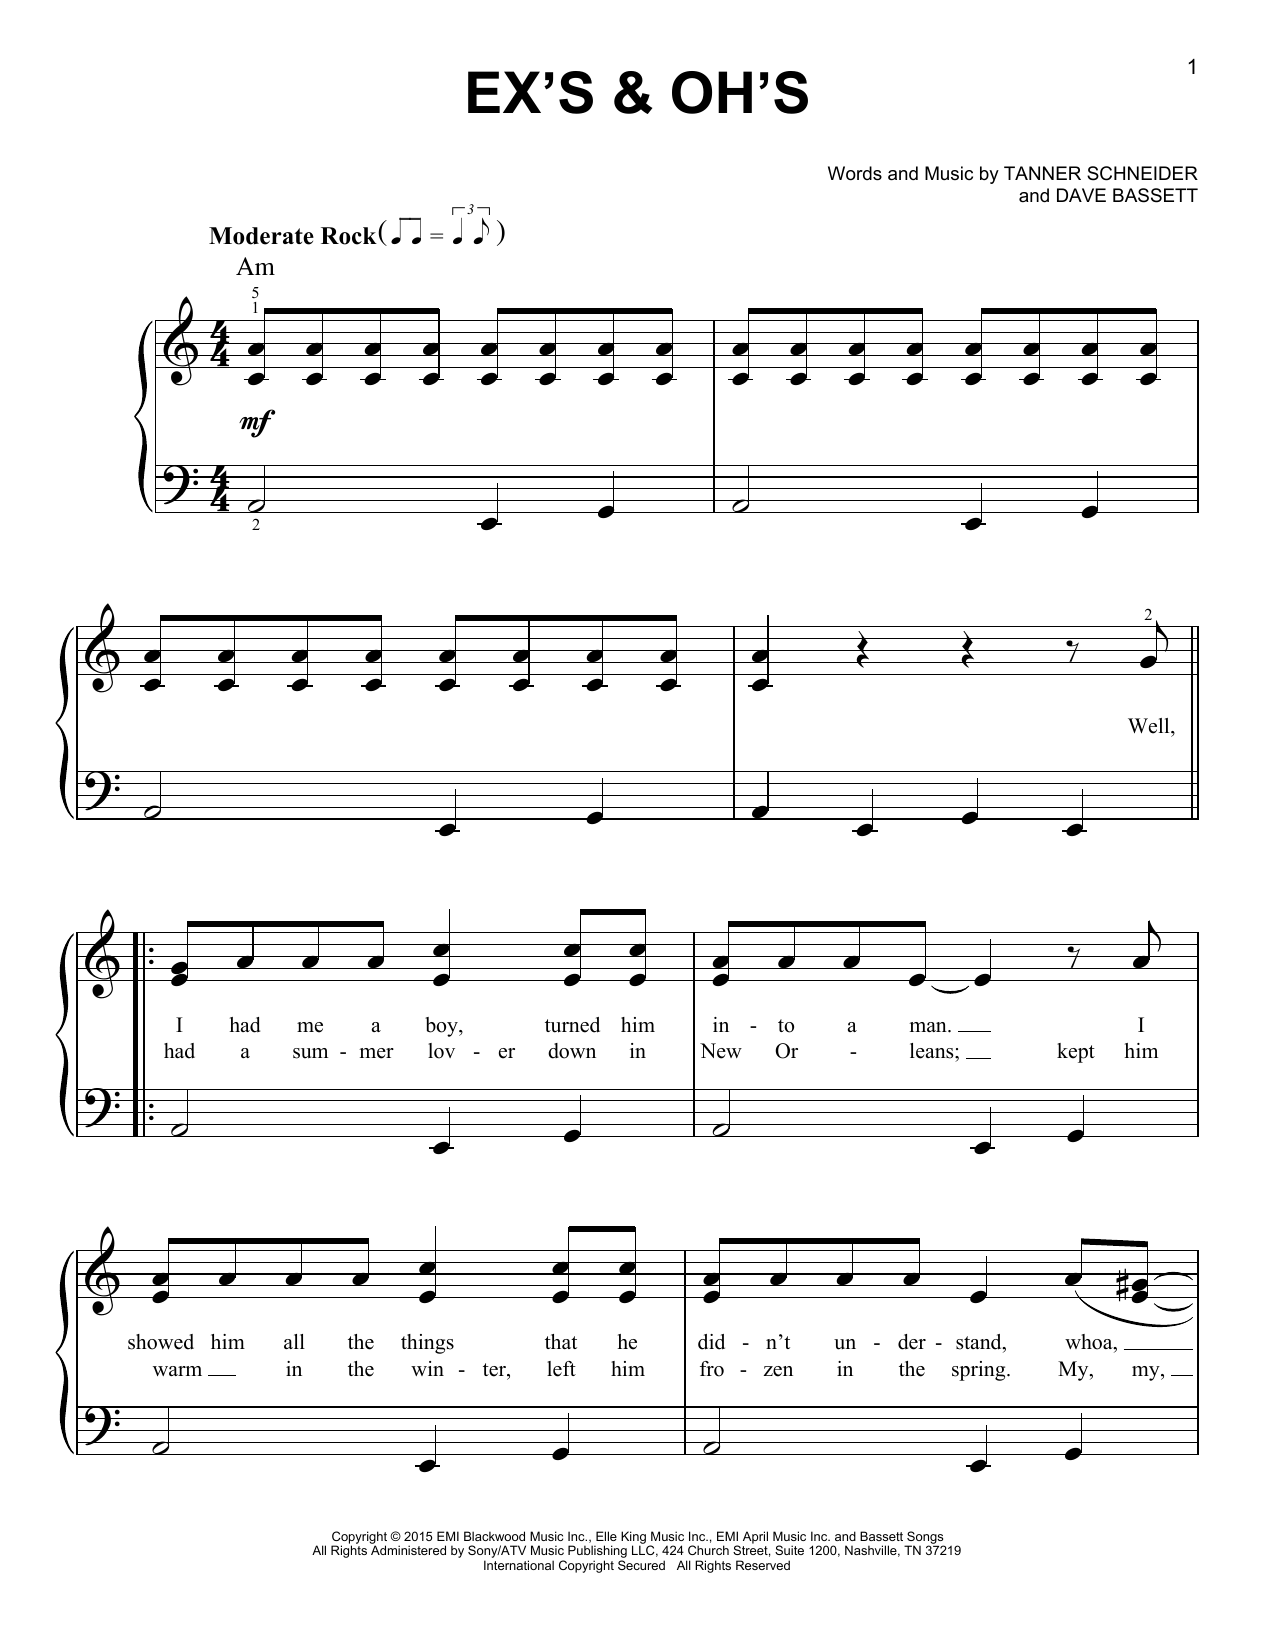 Ex's & Oh's Sheet Music